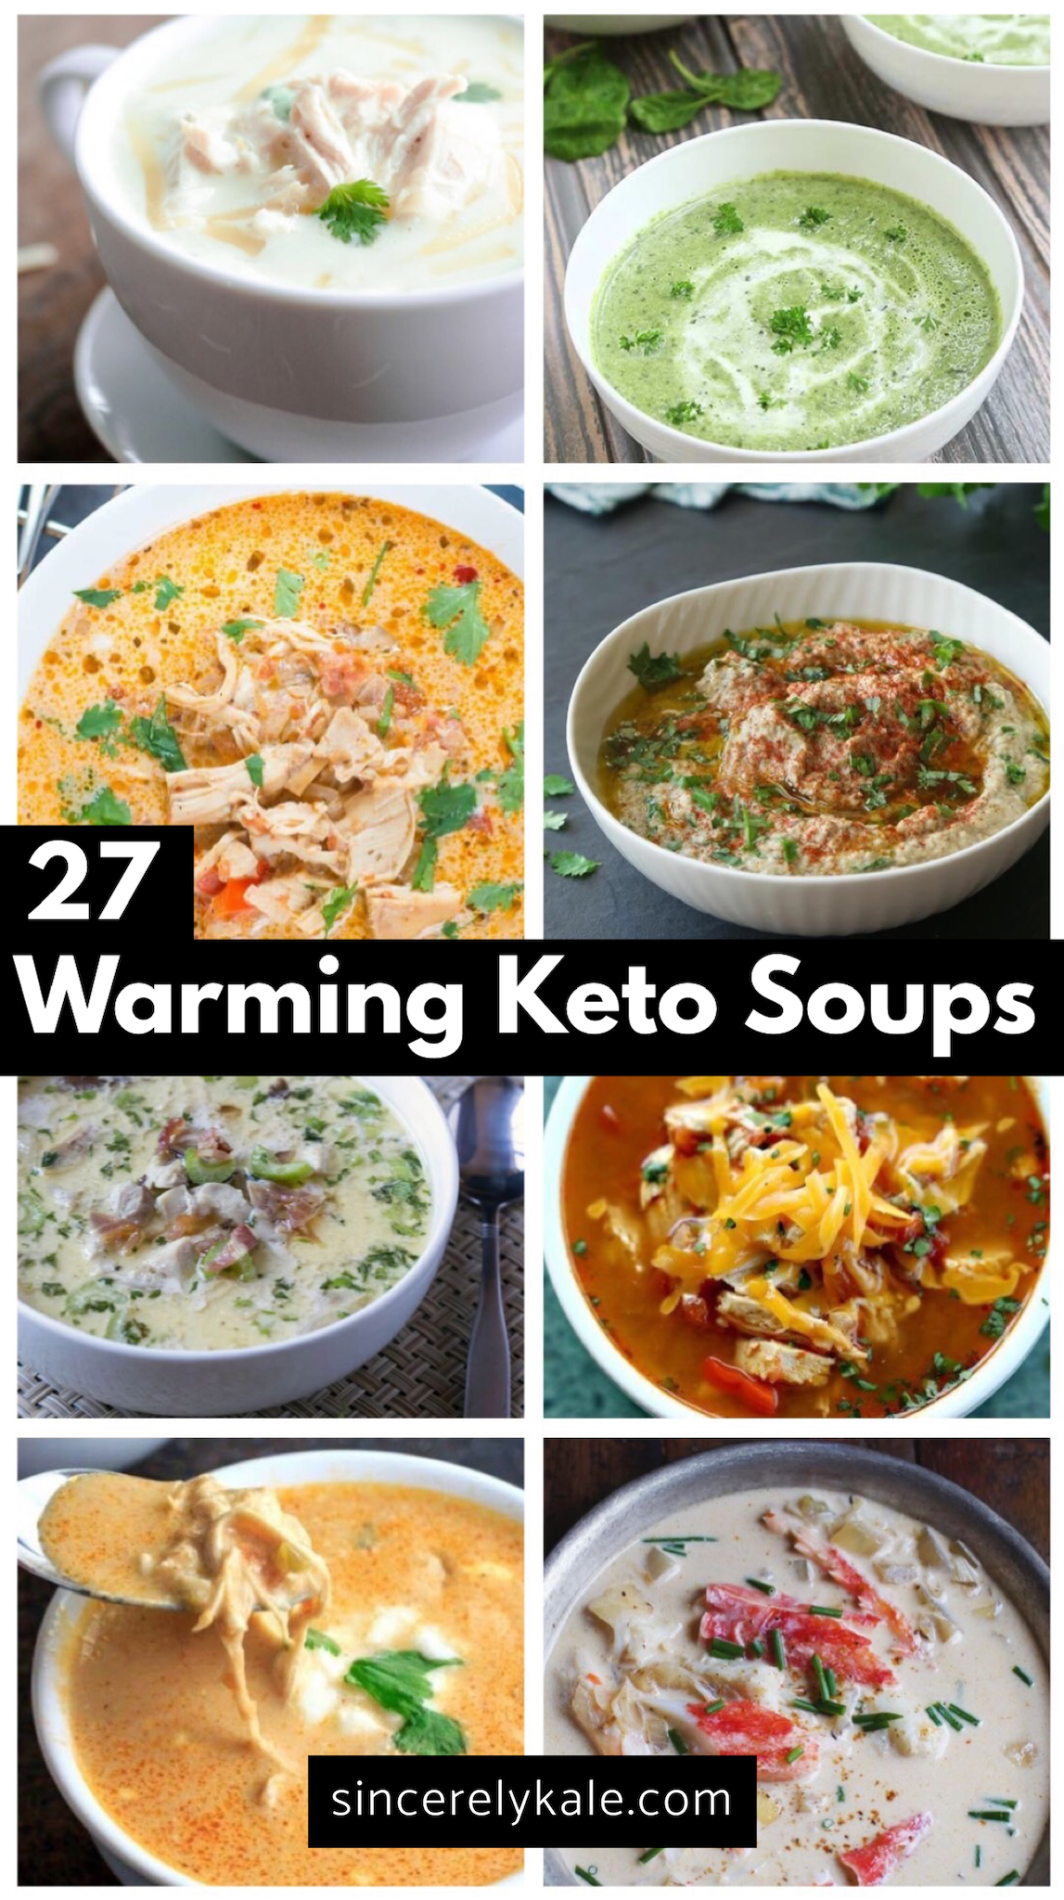 27 Warming Low Carb Keto Soup Recipes - Sincerely Kale #ketofriendlysalads